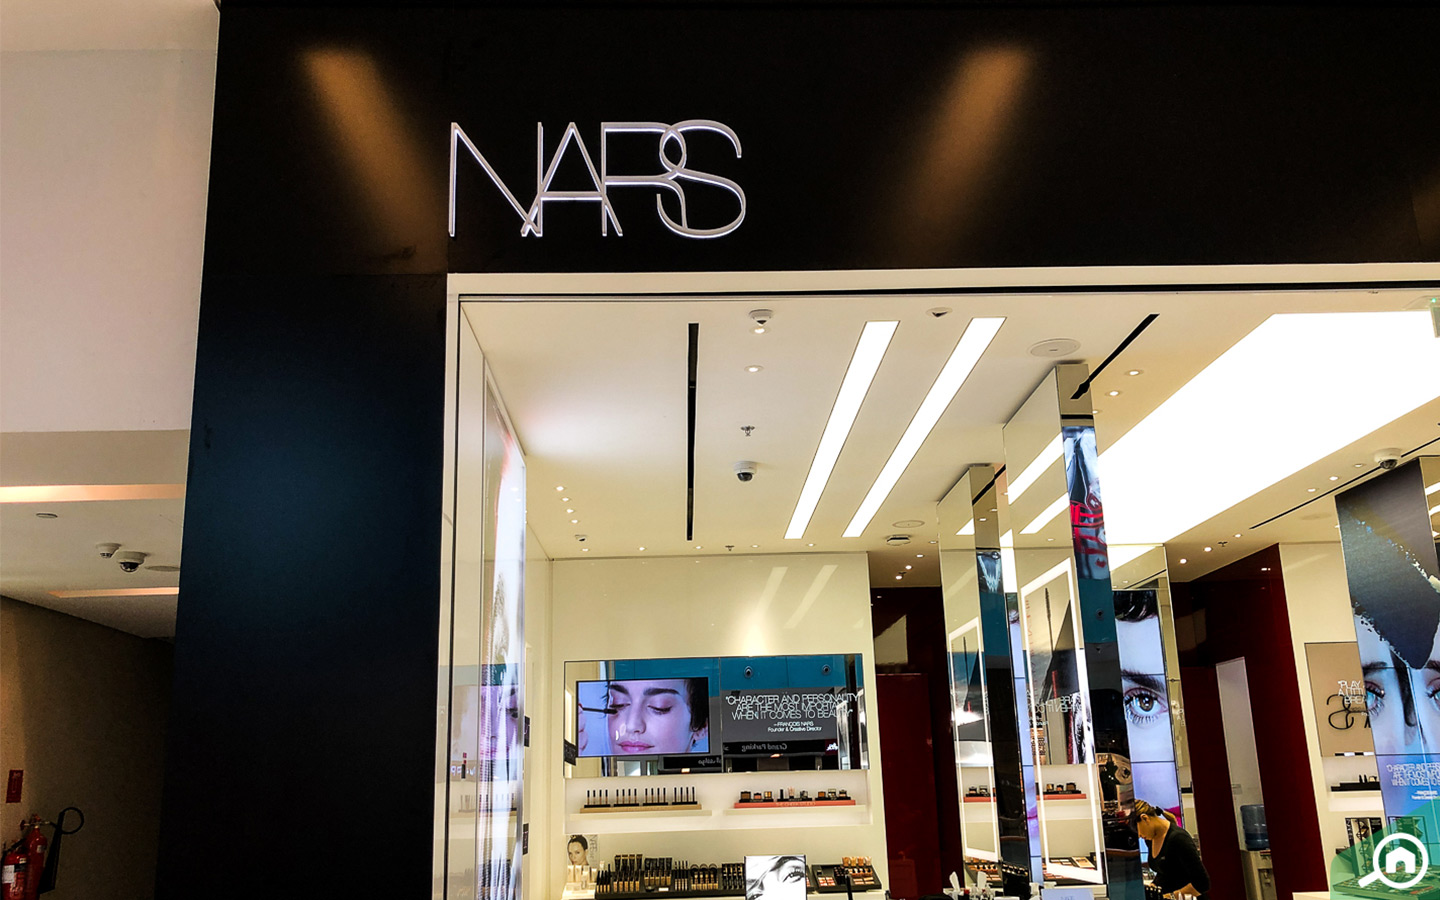 NARS store in Dubai Mall